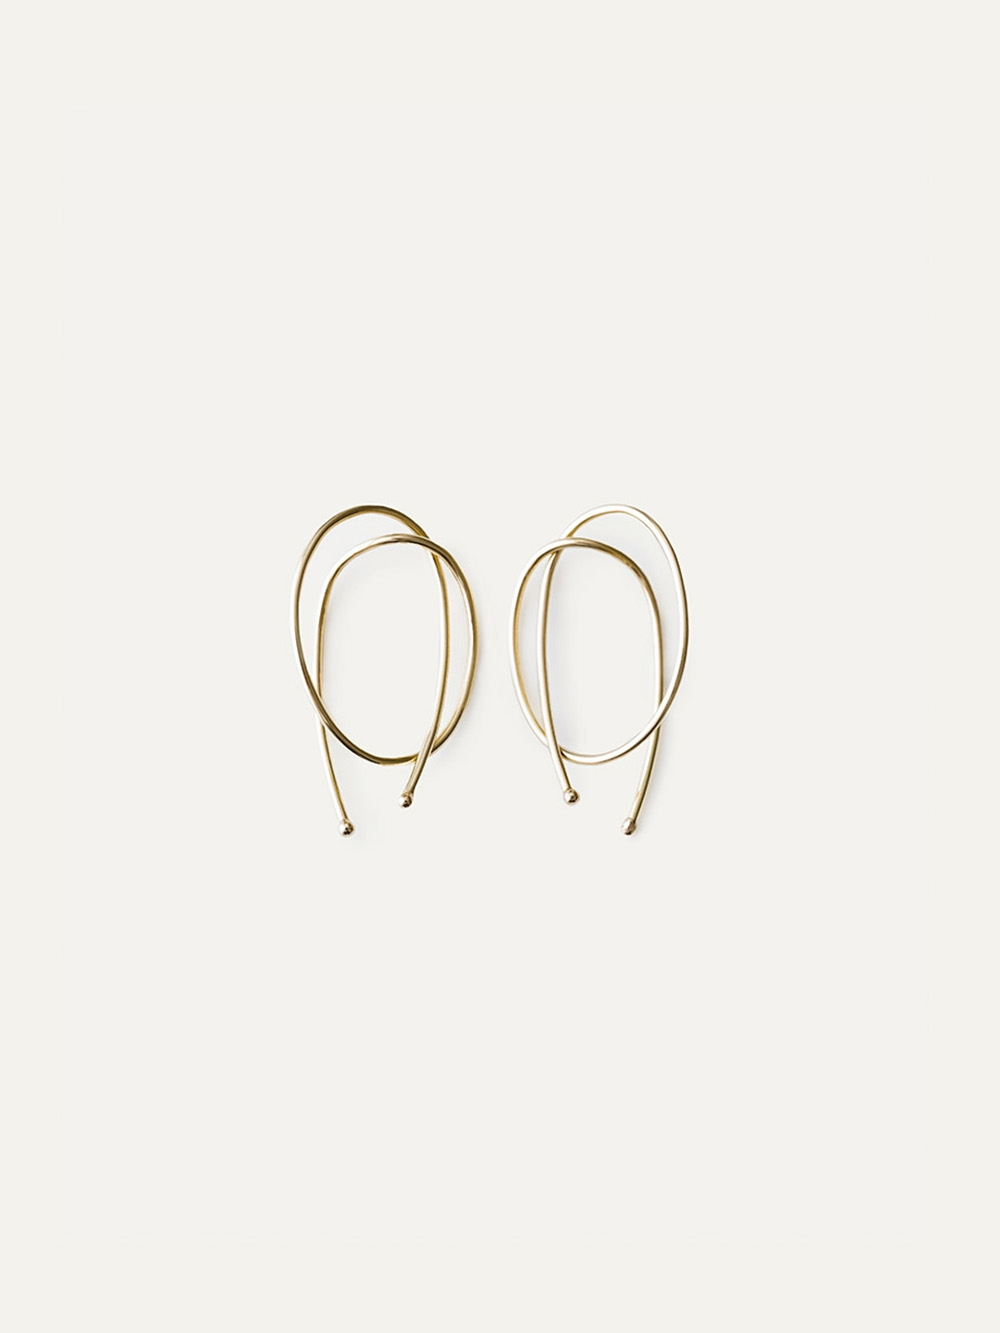 ROPE EARRINGS 14K